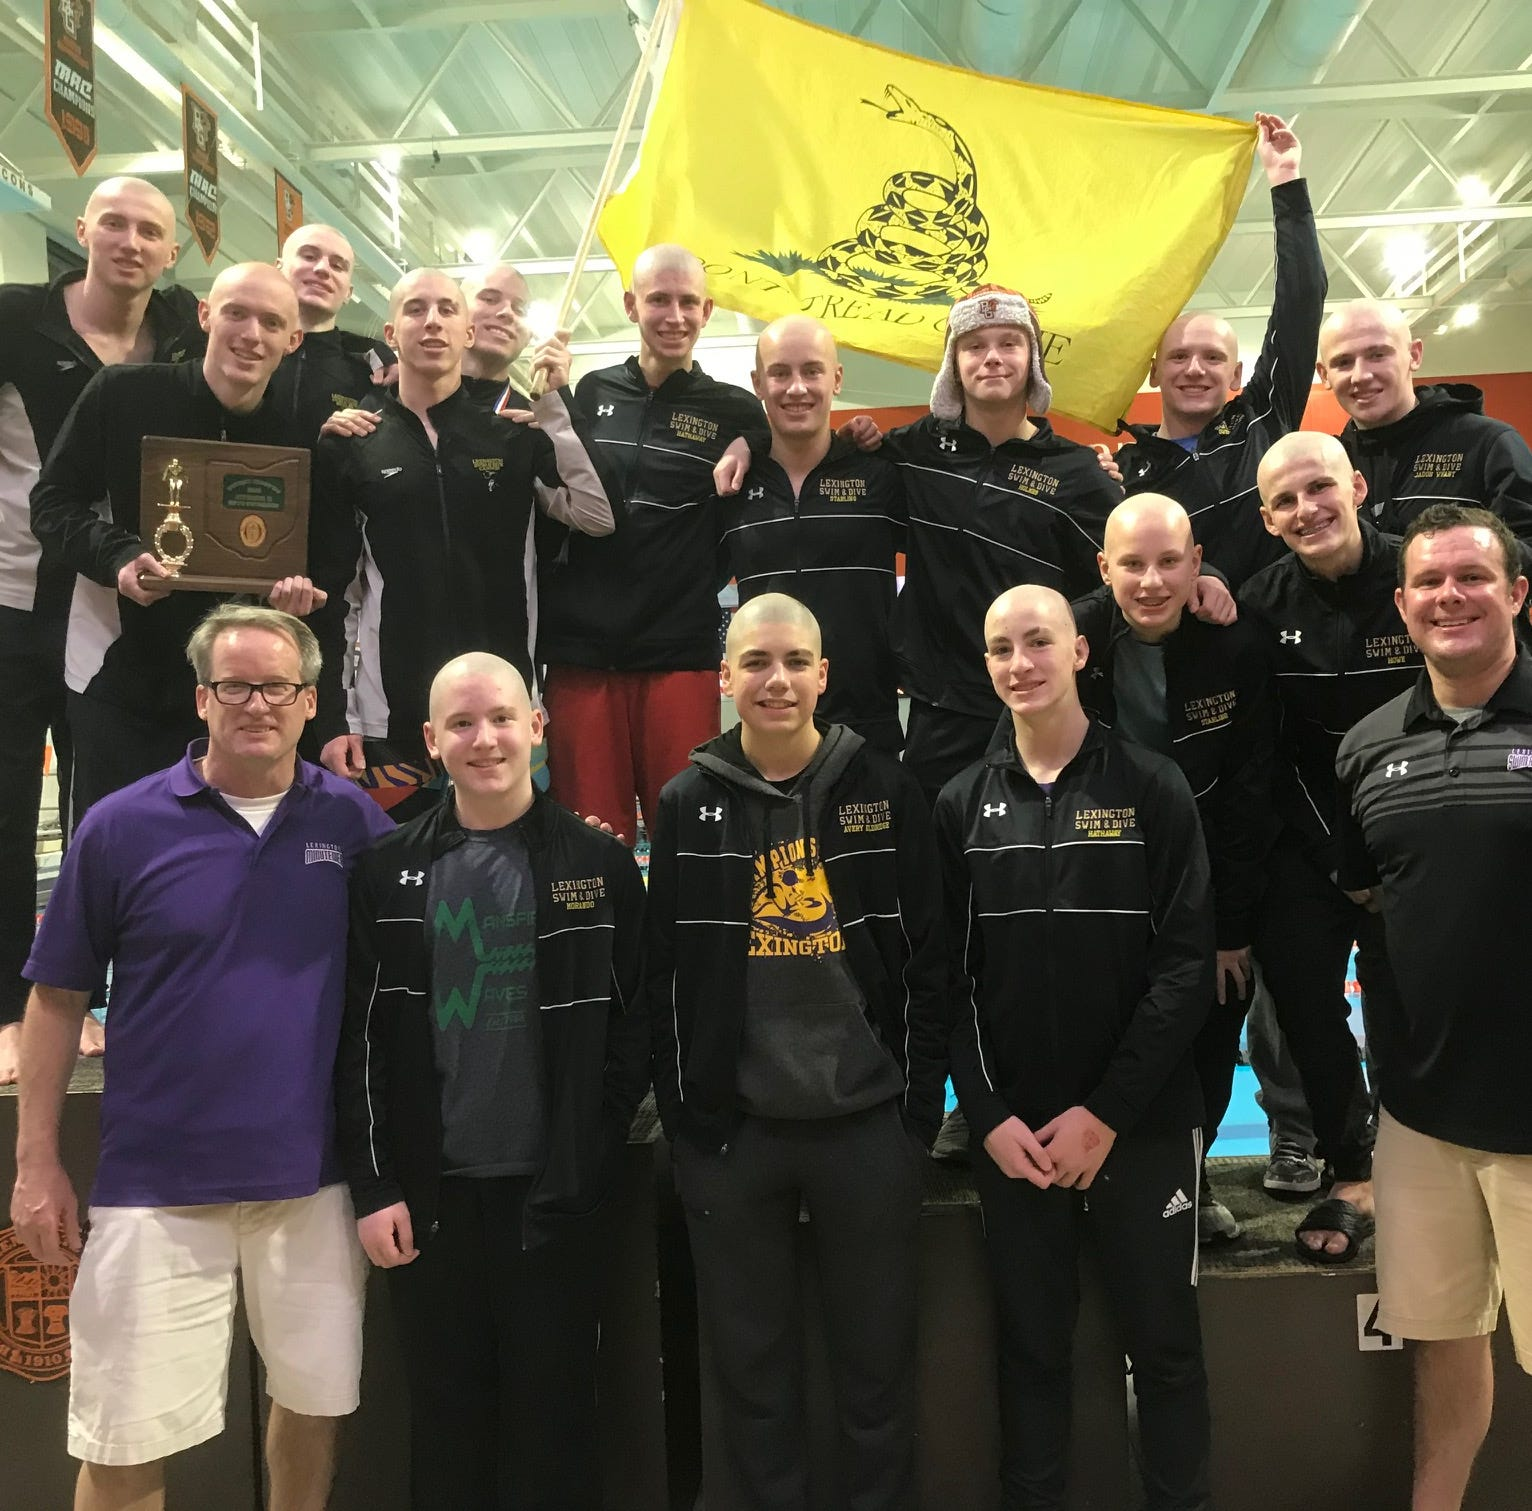 A rousing repeat: Lex sets records, makes waves for district crown